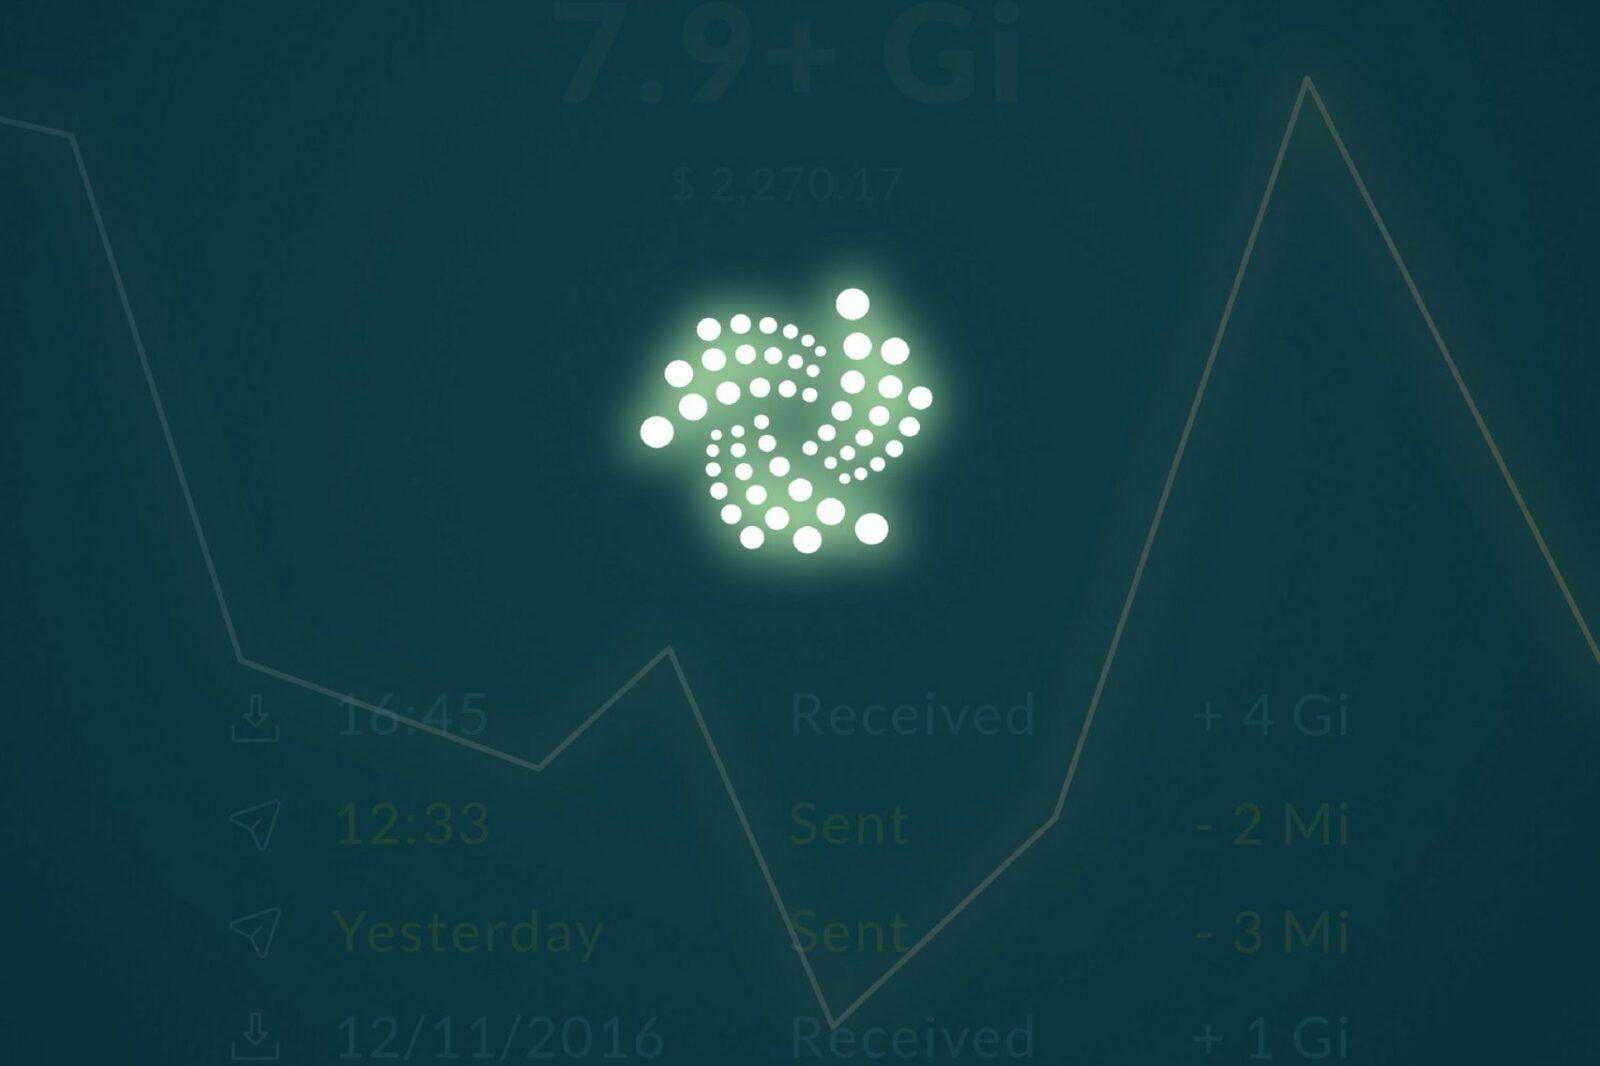 Best IOTA Wallets – Review, Security, and Tips - Cryptalker